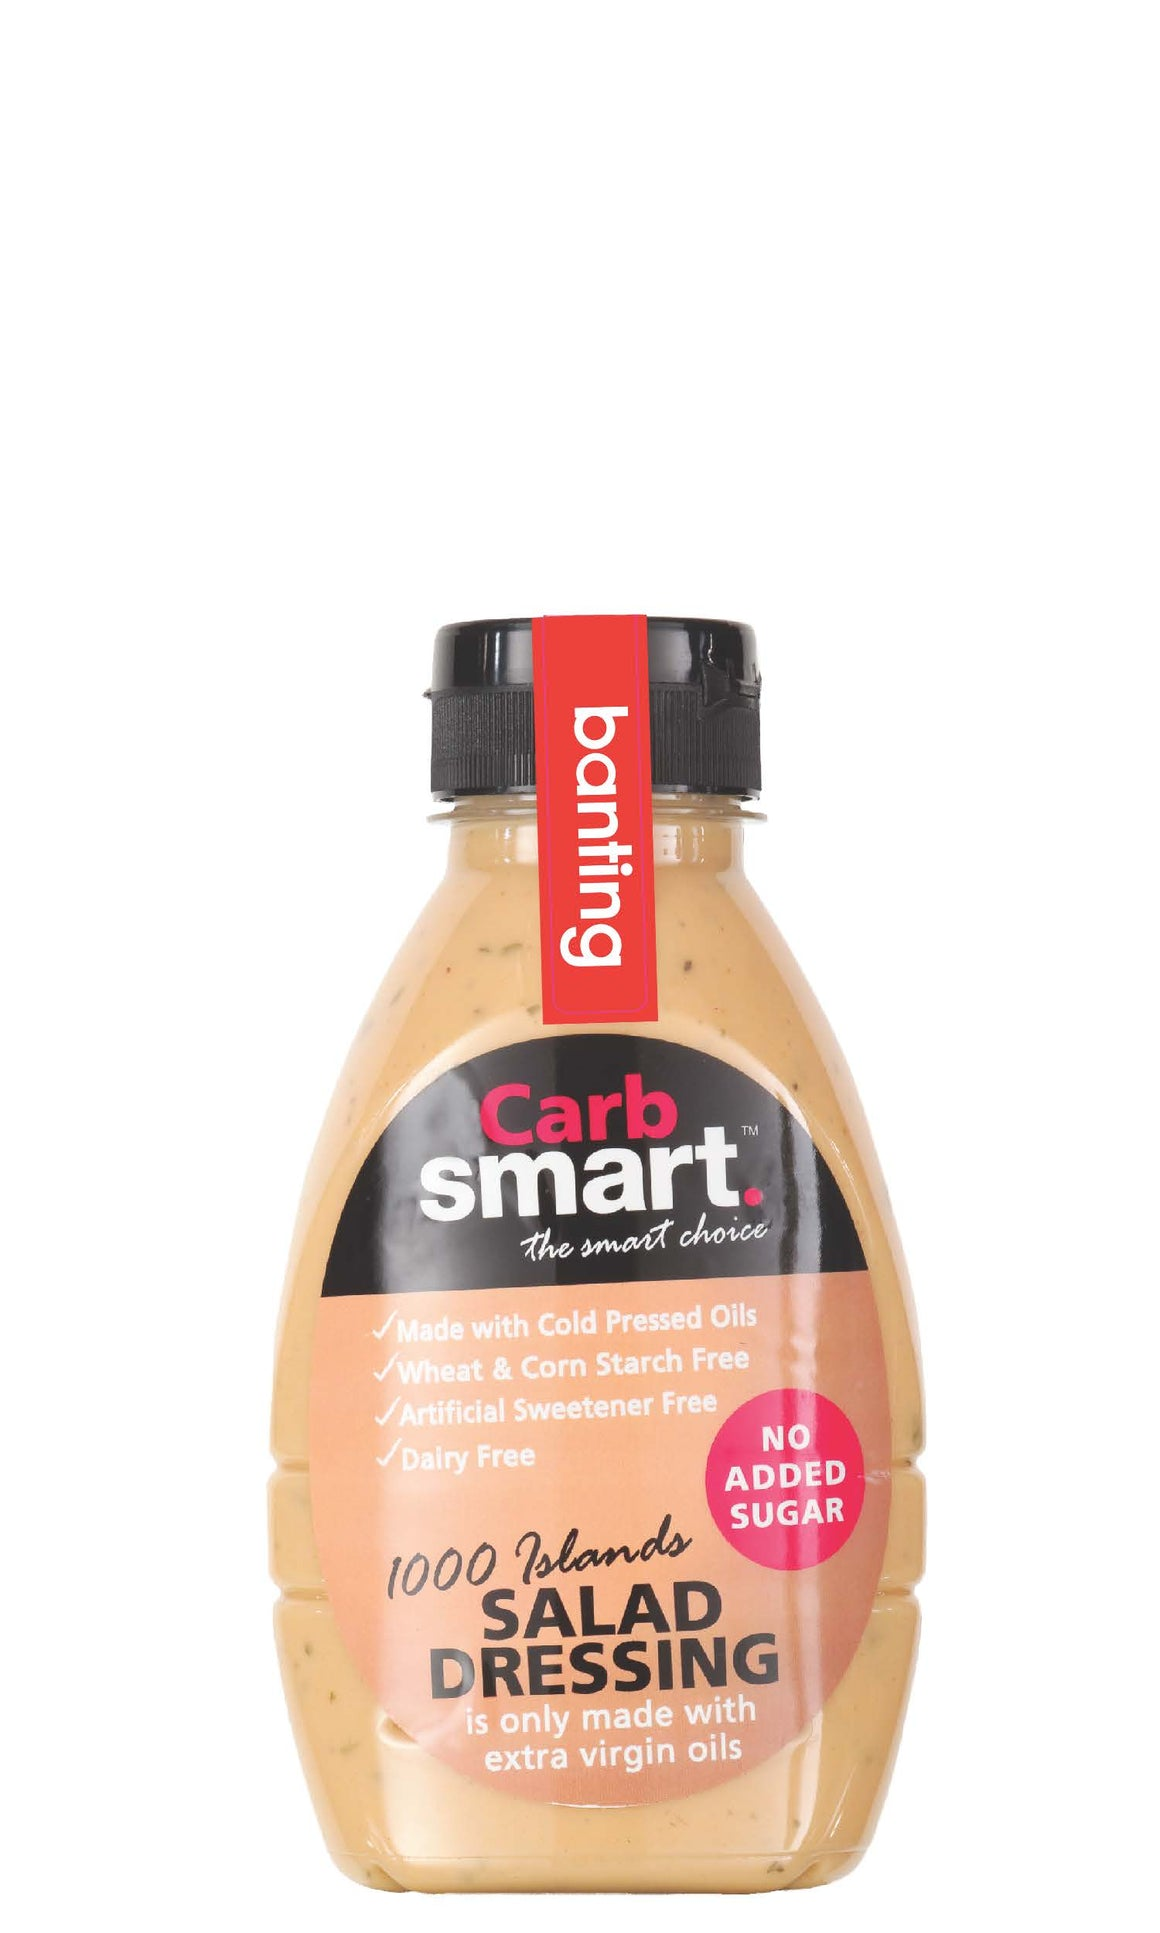 CARBSMART - 1000 Islands Salad Dressing